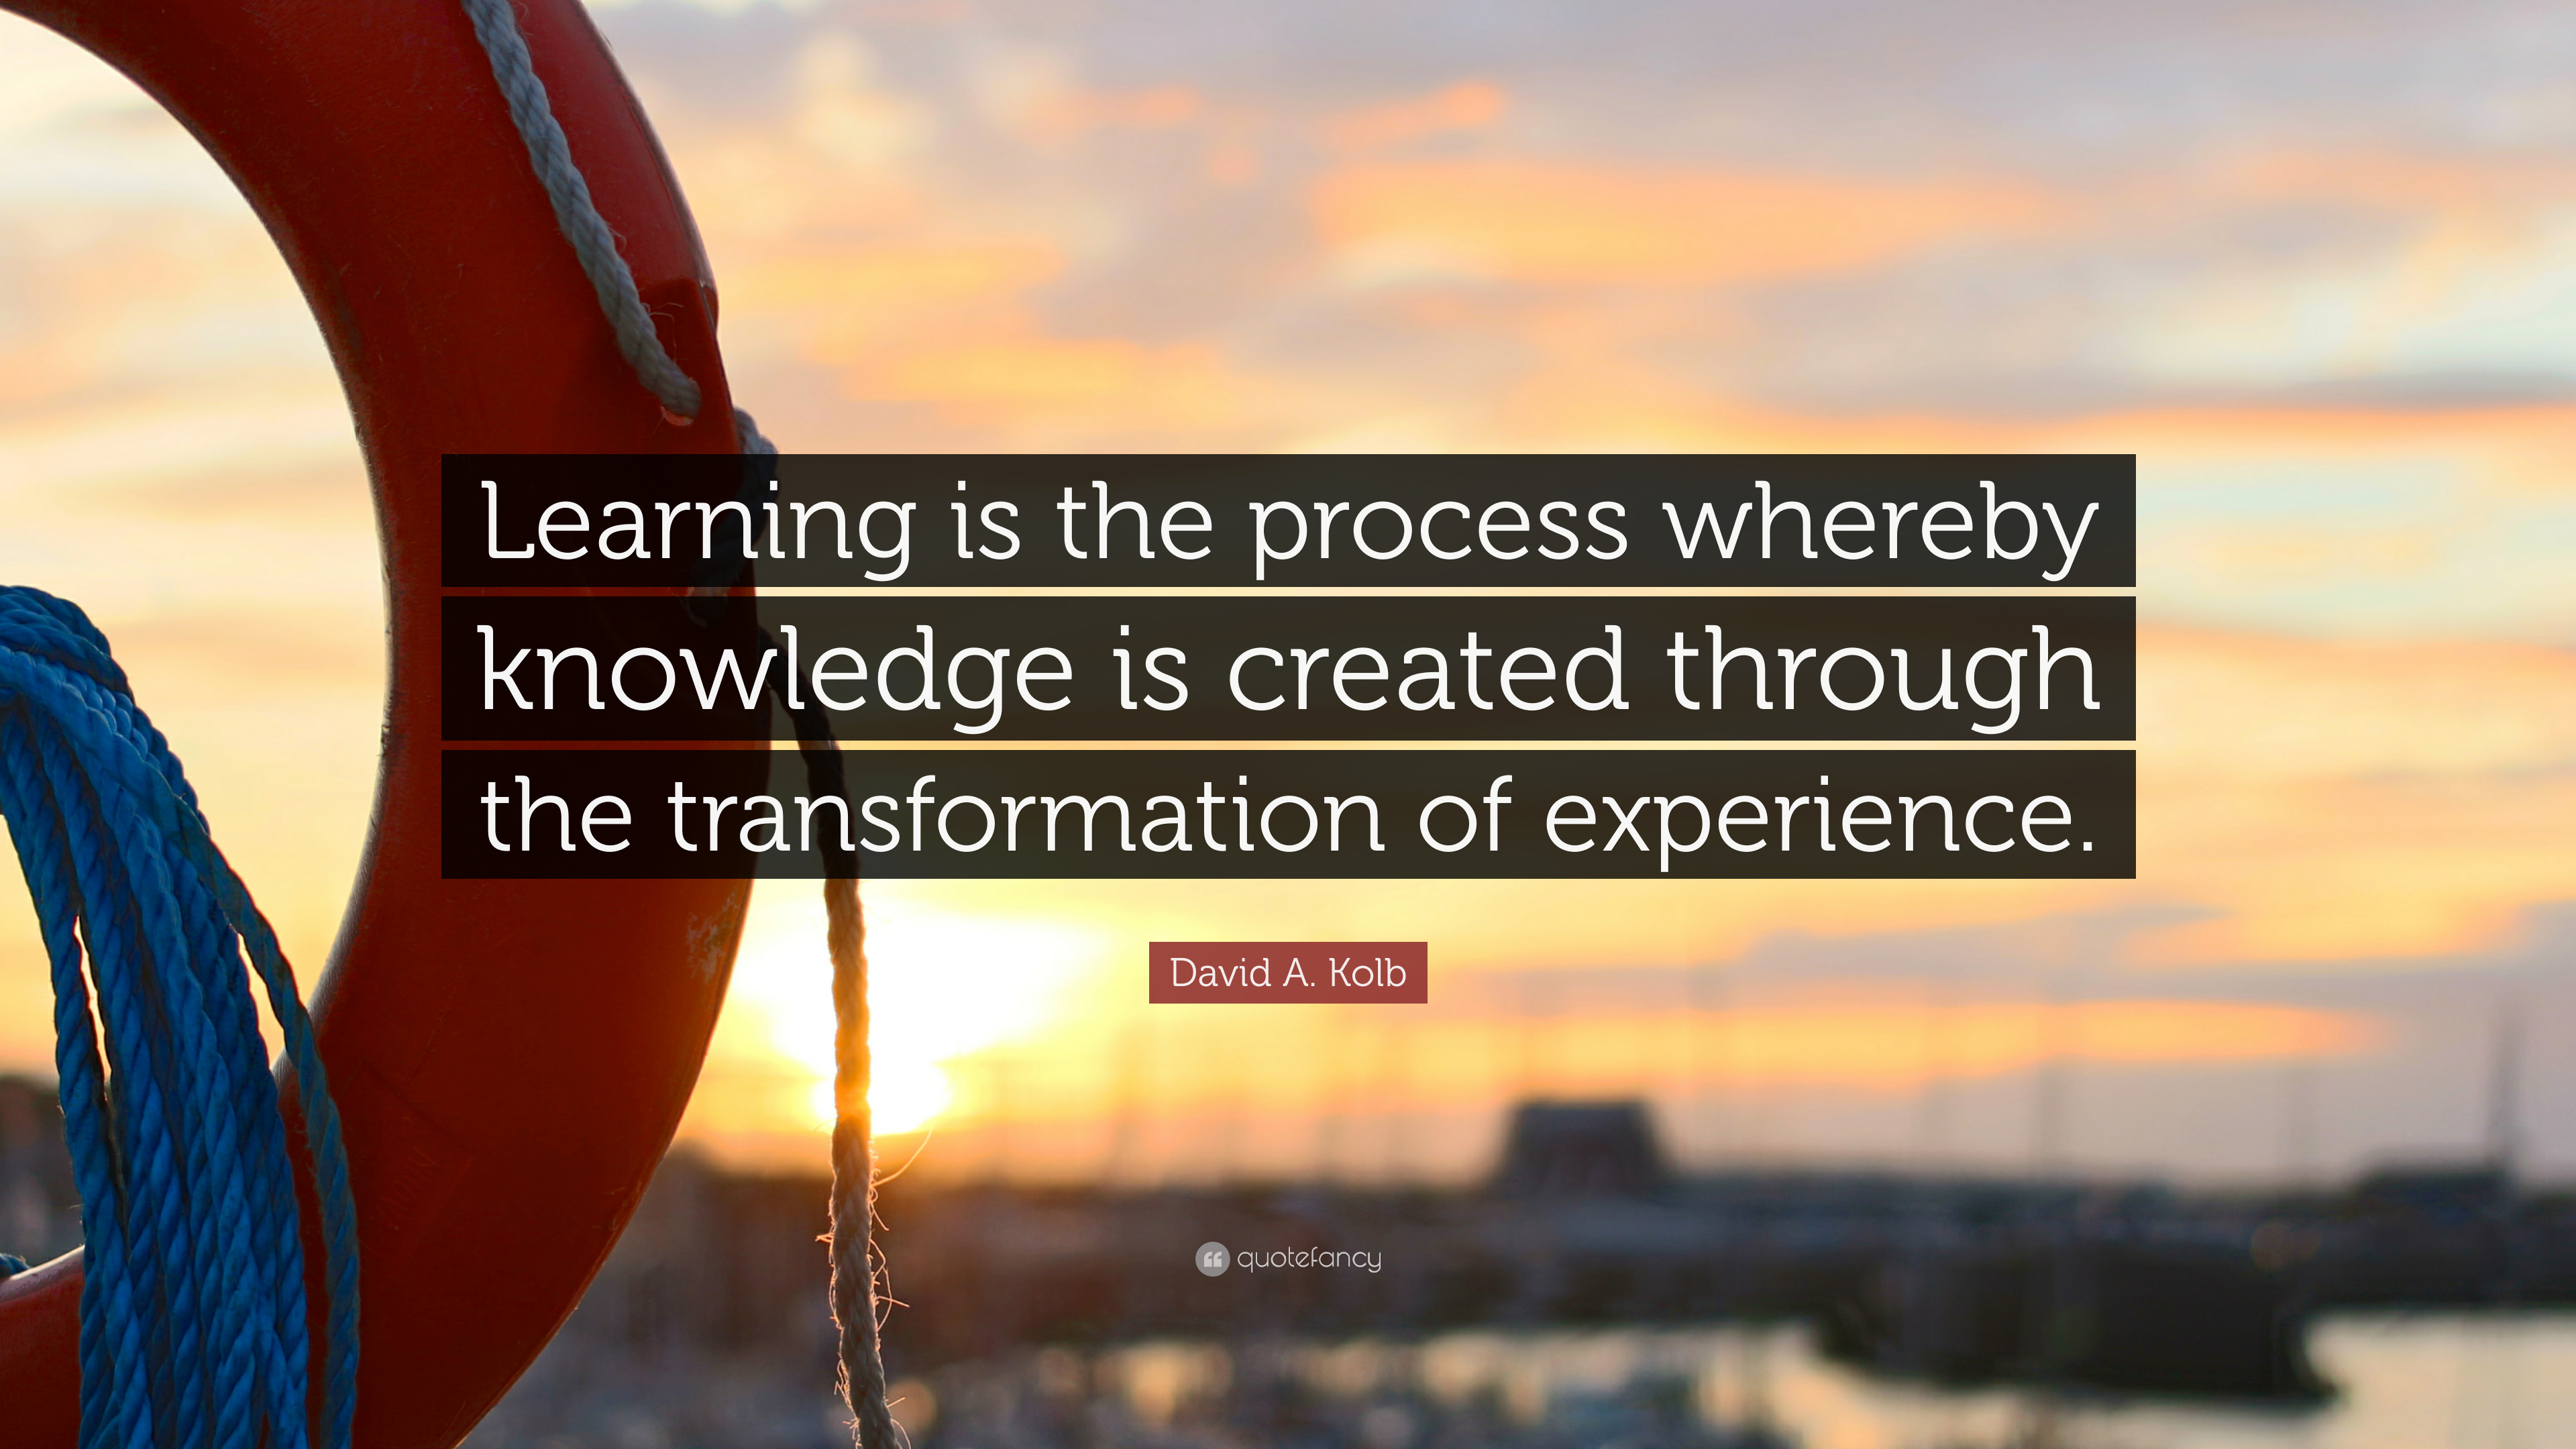 real learning takes place through experience